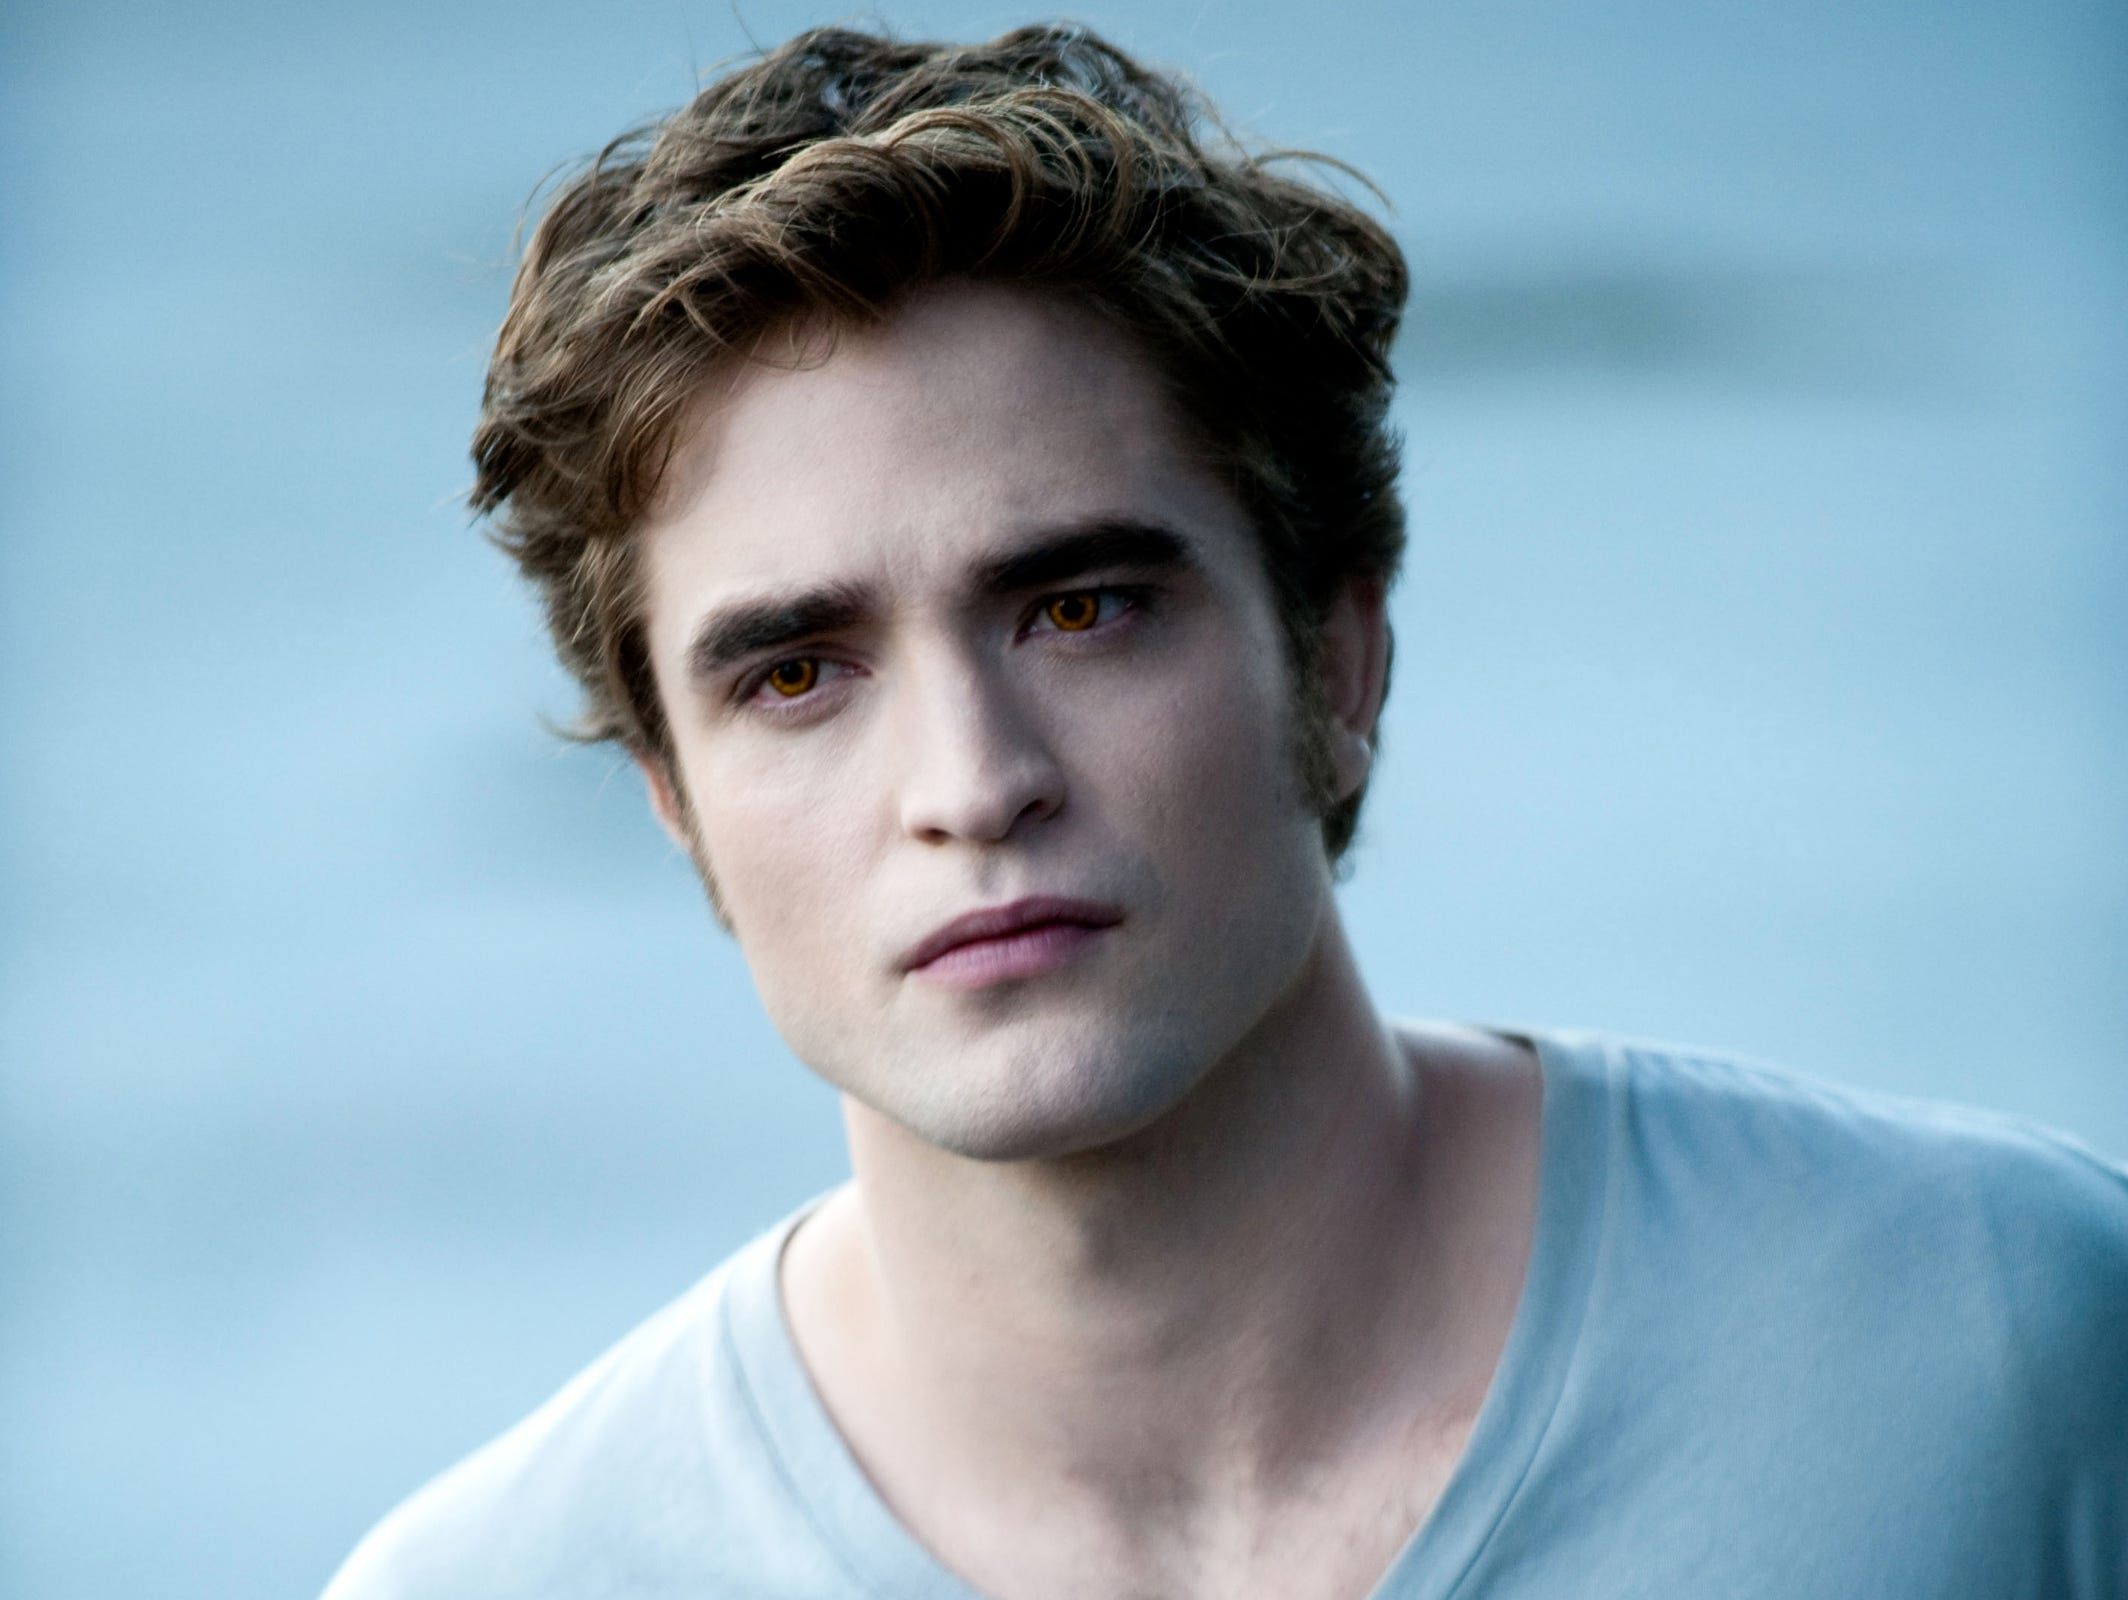 """Pattinson, who was only in the fourth """"Harry Potter"""" movie, moved on to another major movie franchise, starring in the """"Twilight"""" franchise as vampire Edward Cullen."""